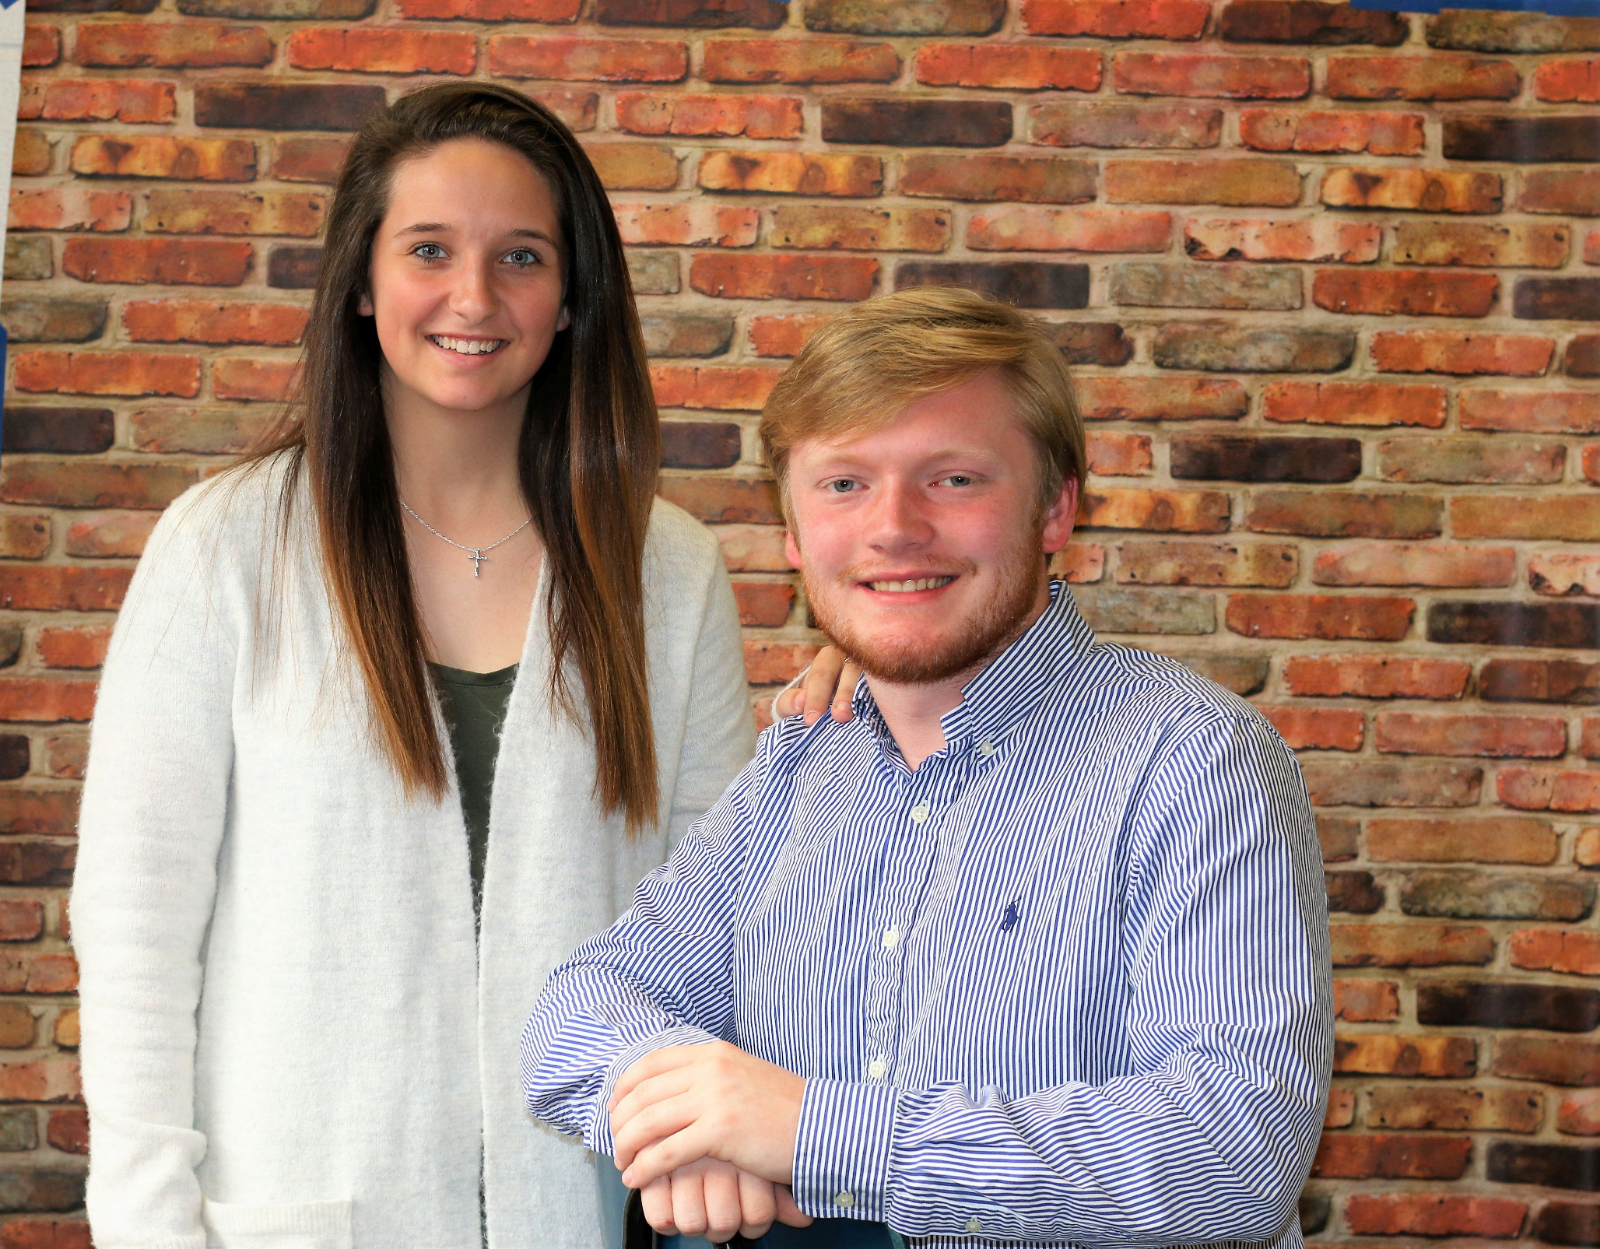 School Level Winners for the12th Annual Vincent J. Dooley Awards & Scholarships